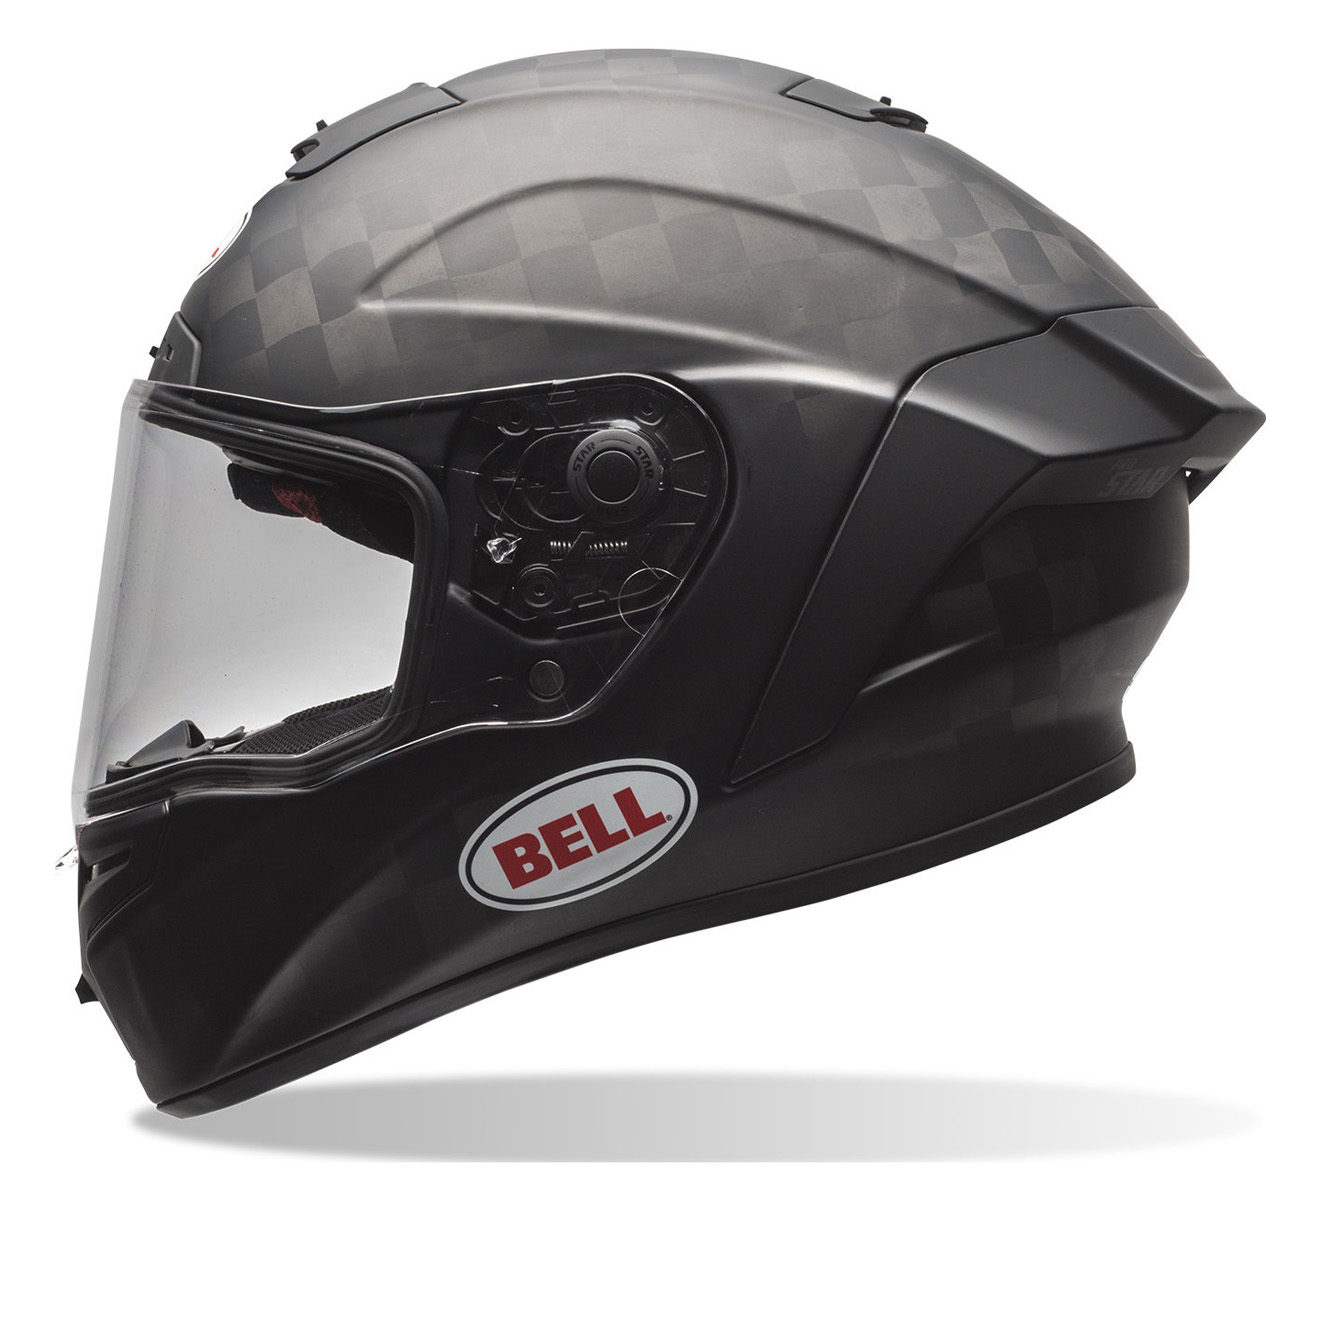 bell pro star solid motorcycle helmet full face helmets. Black Bedroom Furniture Sets. Home Design Ideas